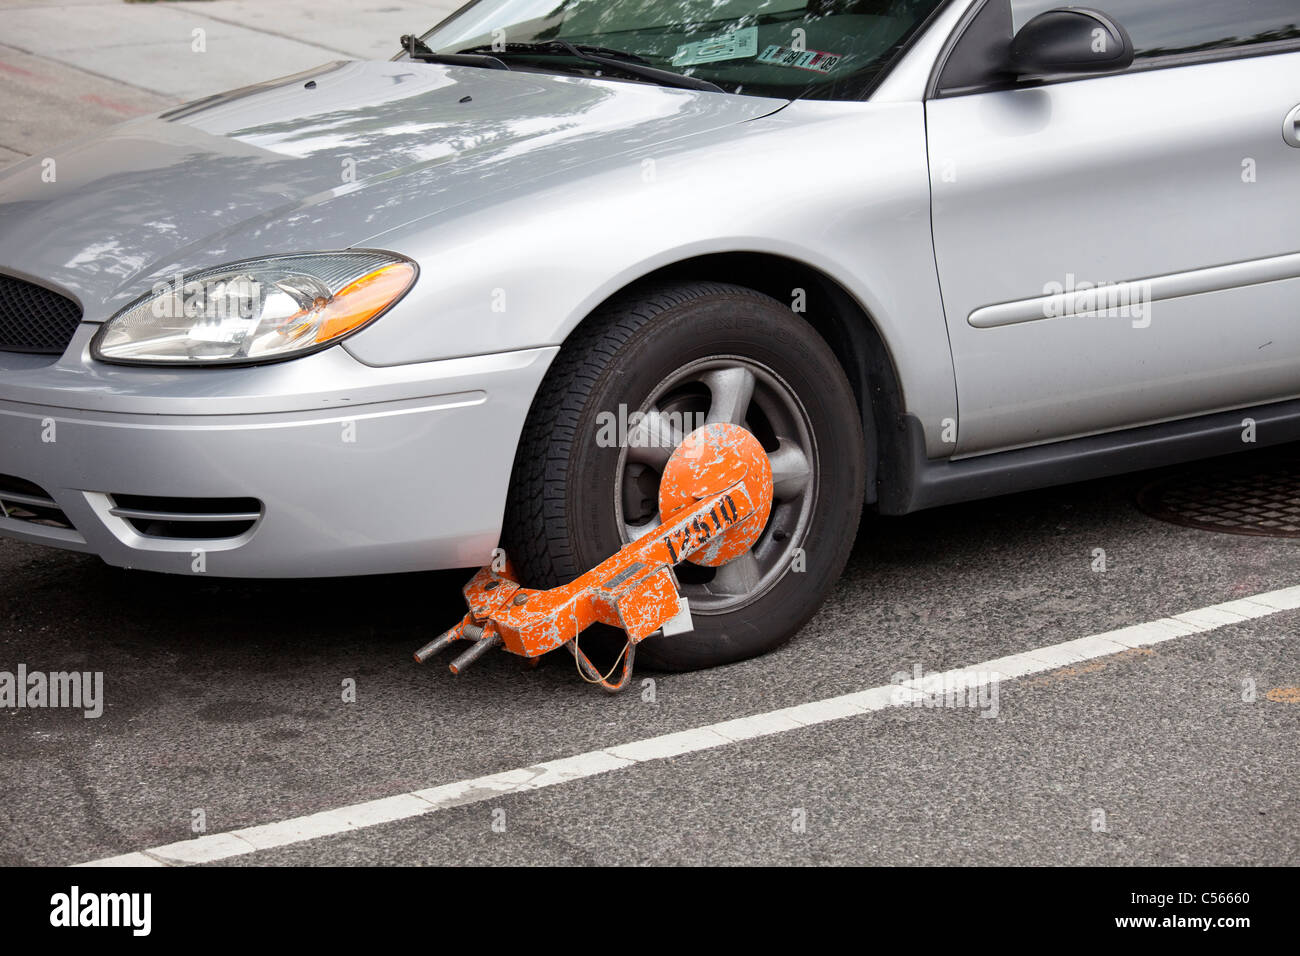 Car booted in Washington DC - Stock Image